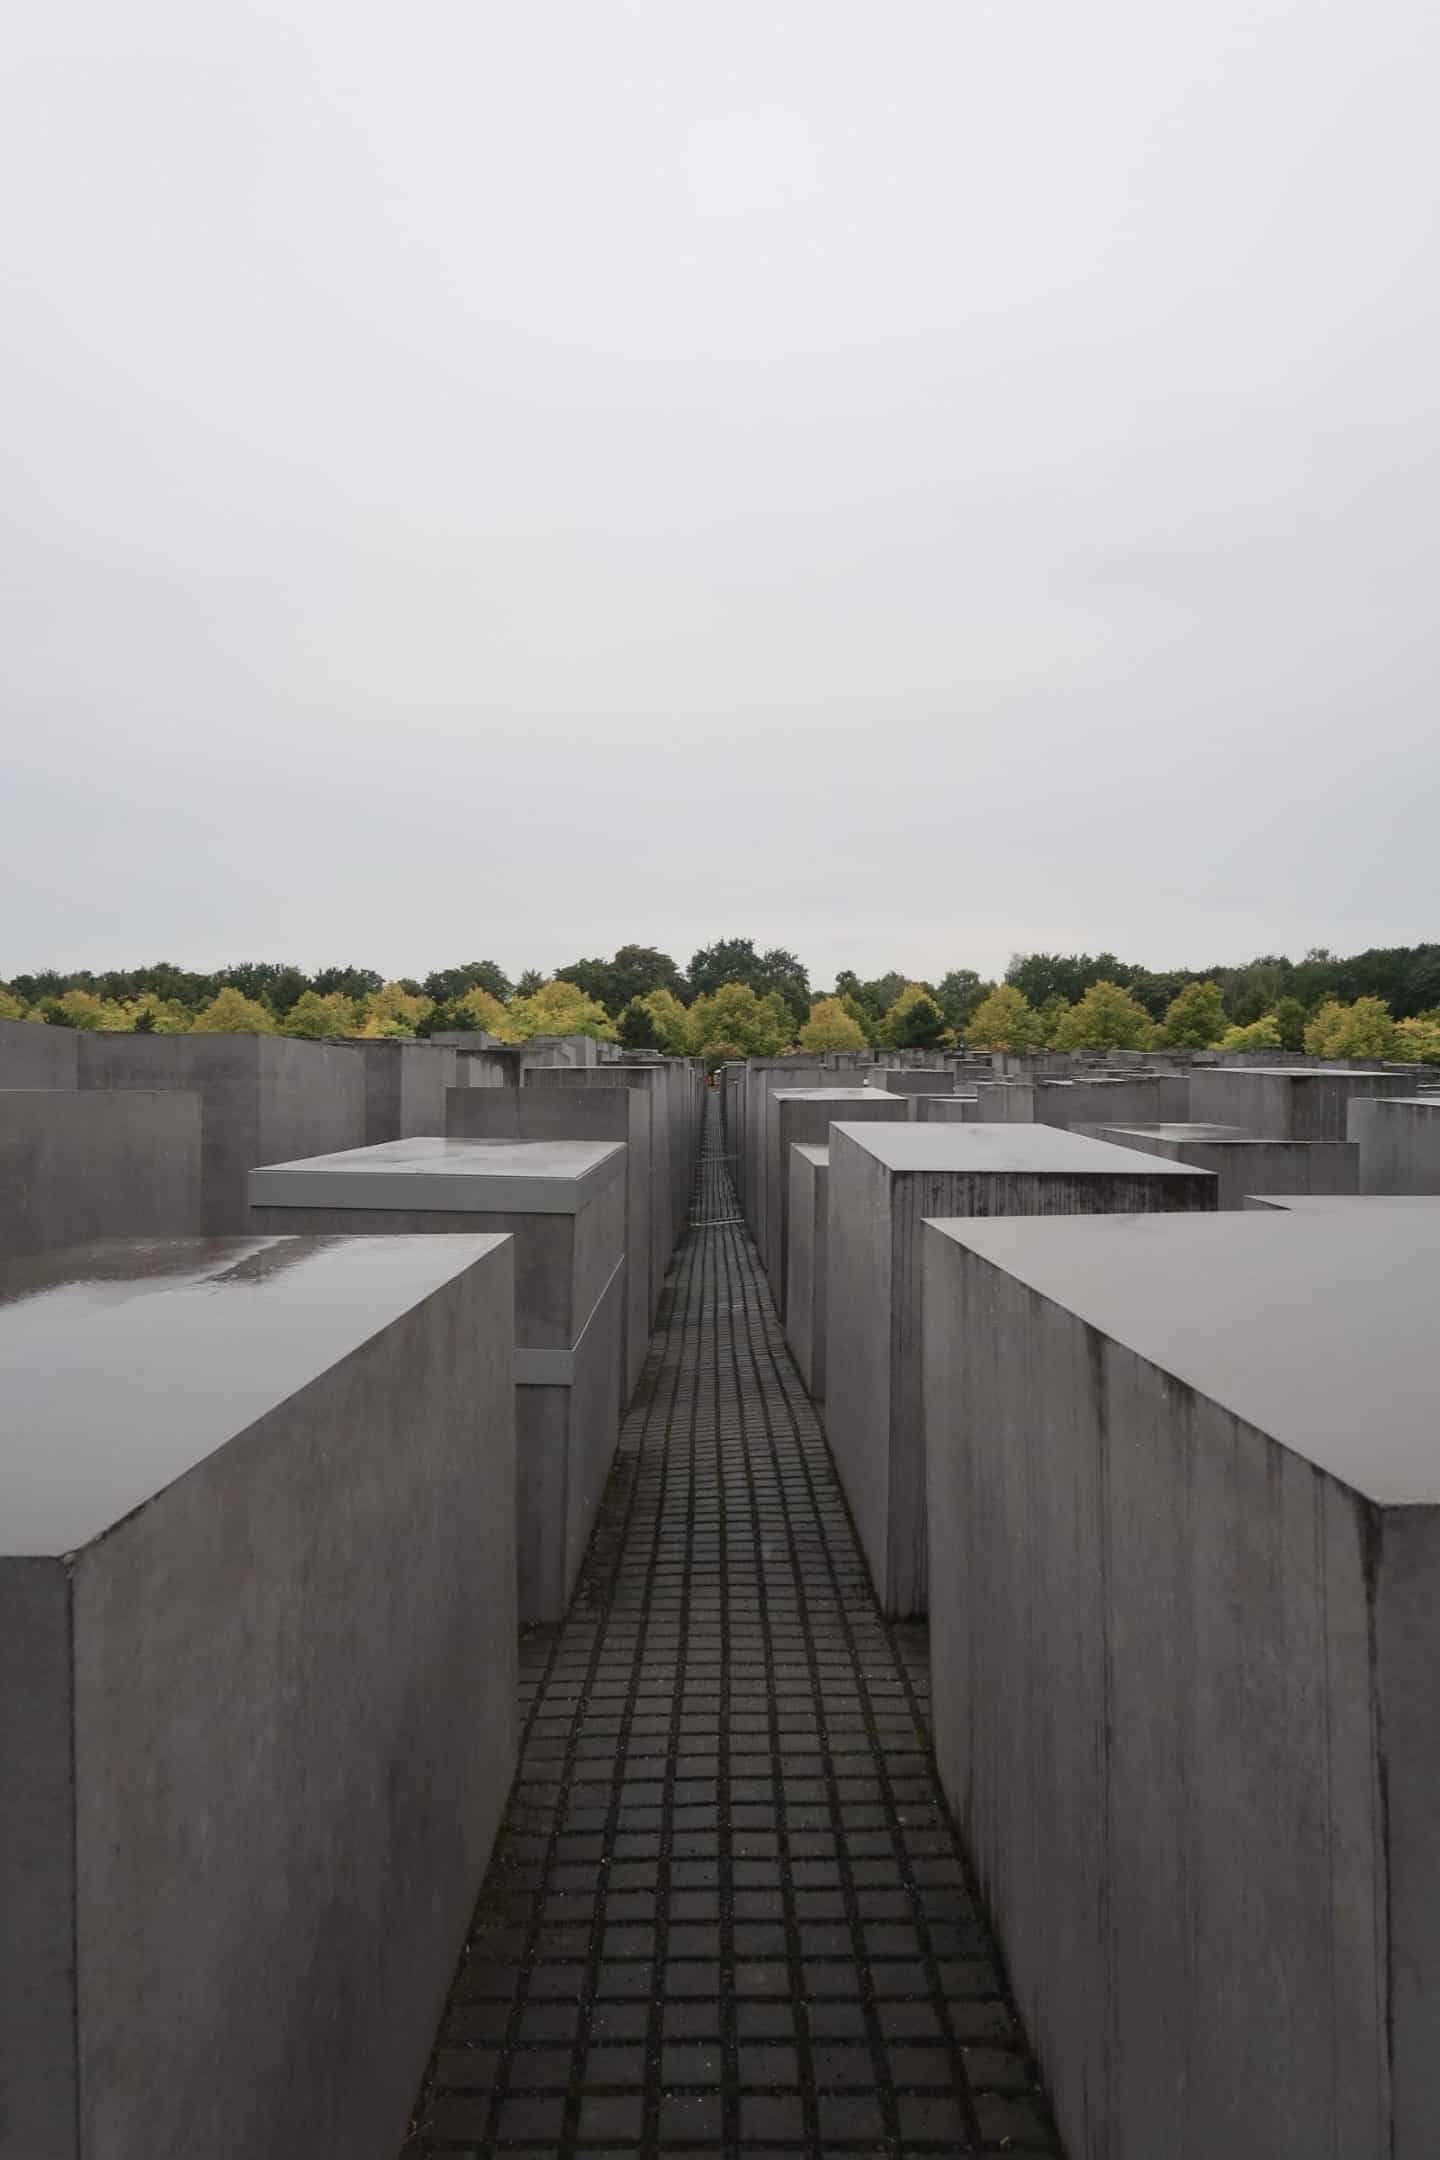 berlin memorial of the murdered jews of europe